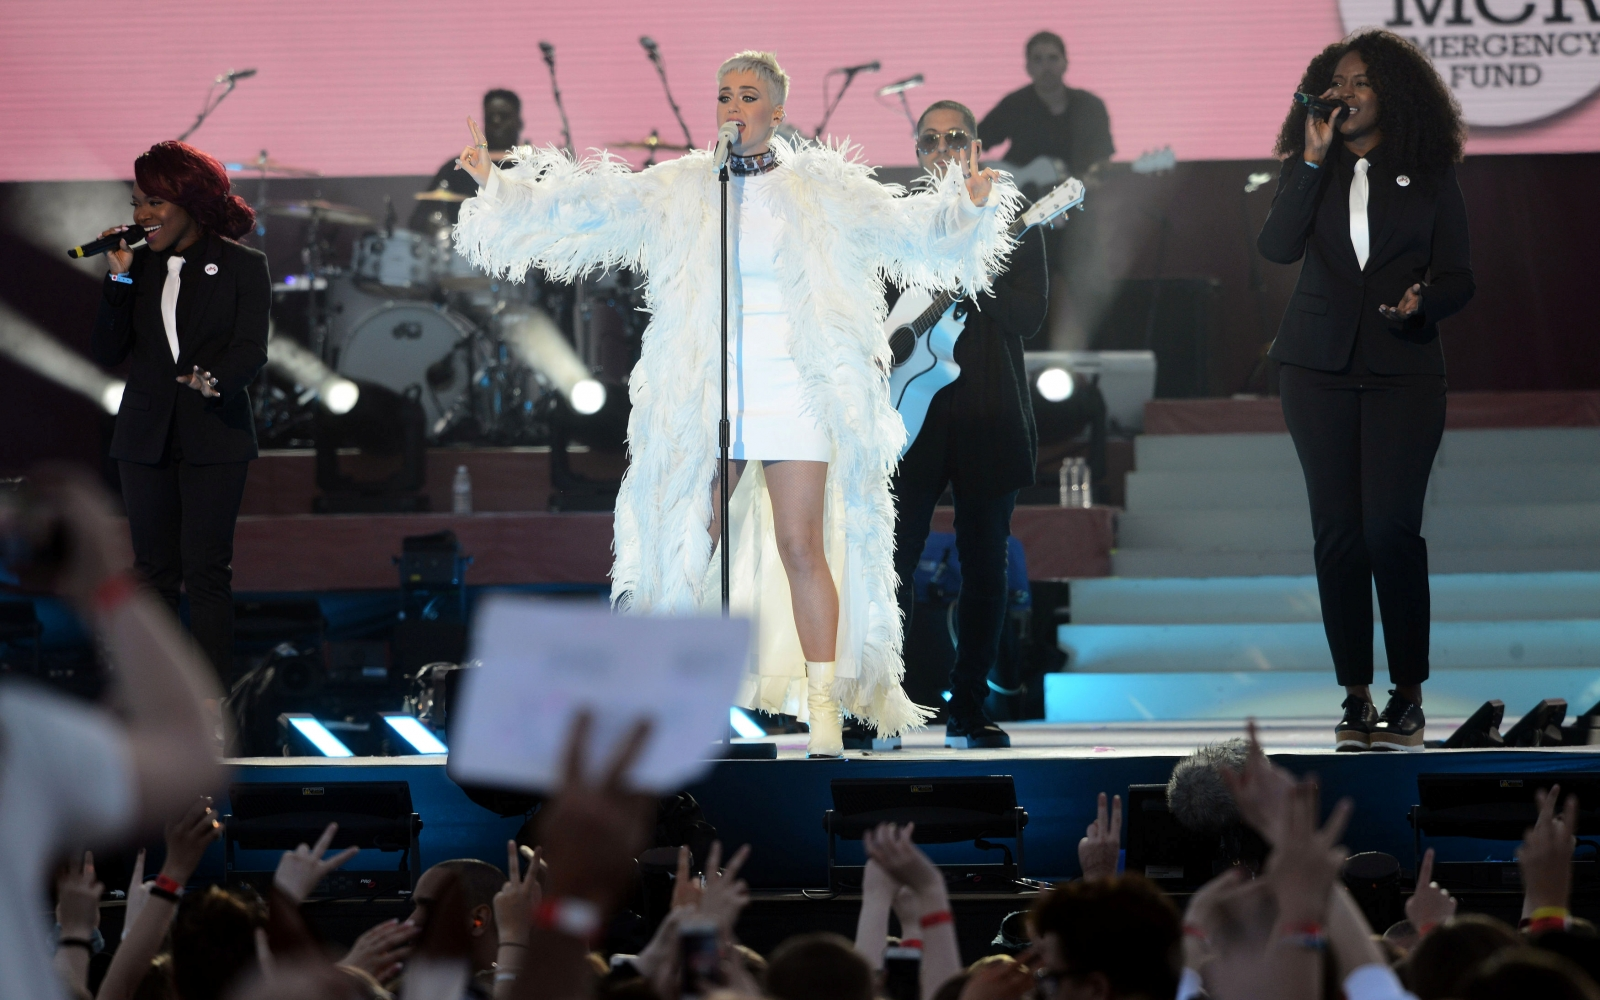 Katy Perry performing during One Love Manchester